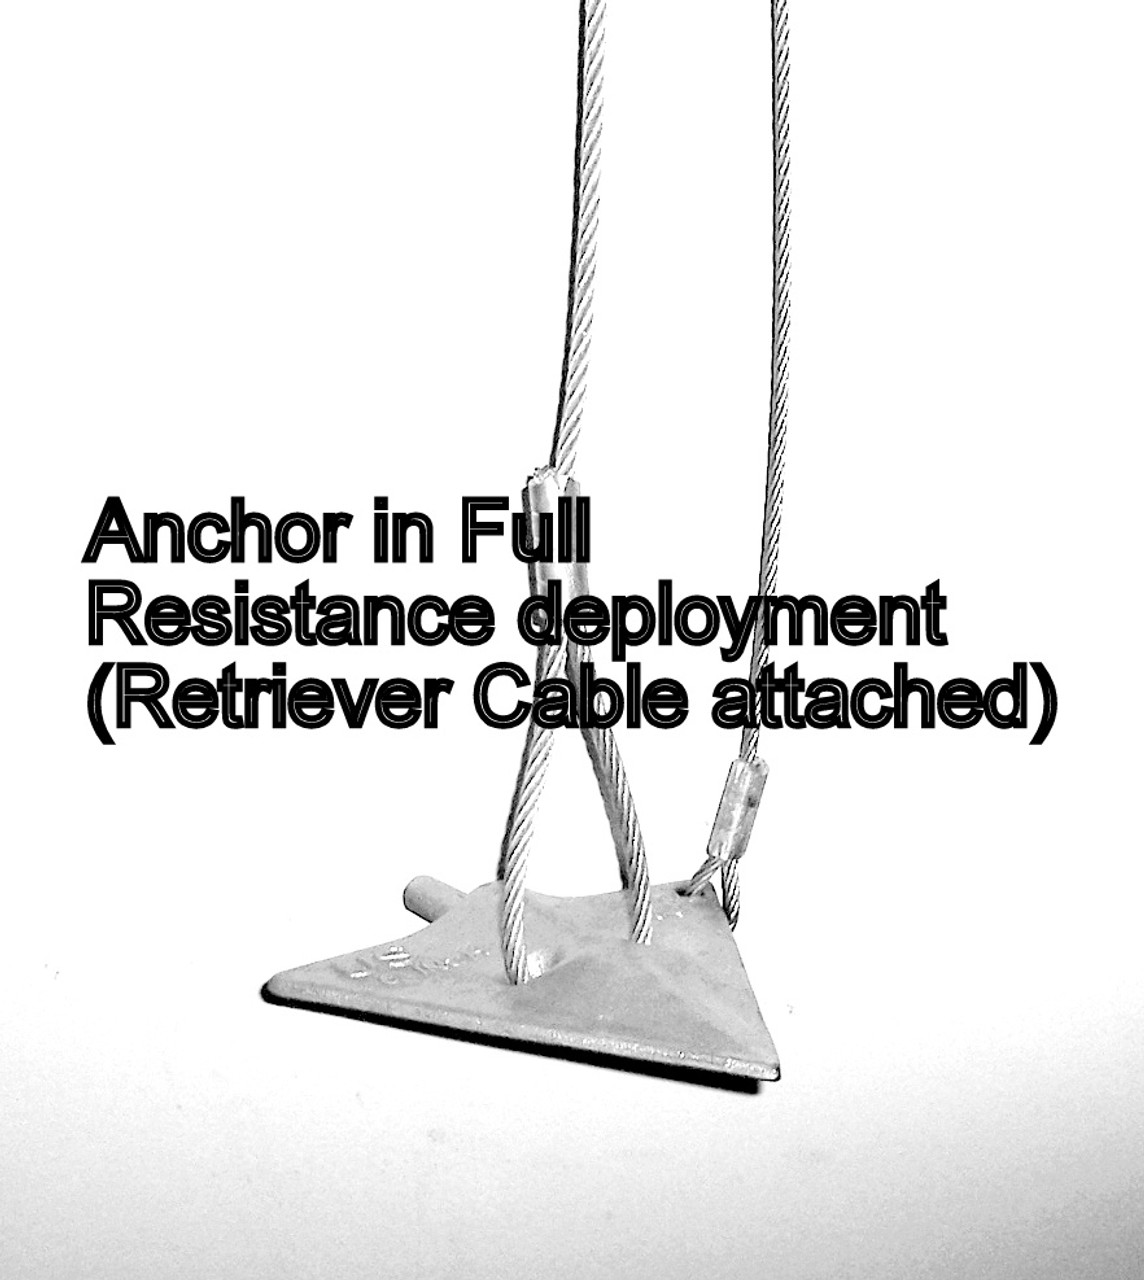 6'' Ground Anchor Assembly with Retriever Cable